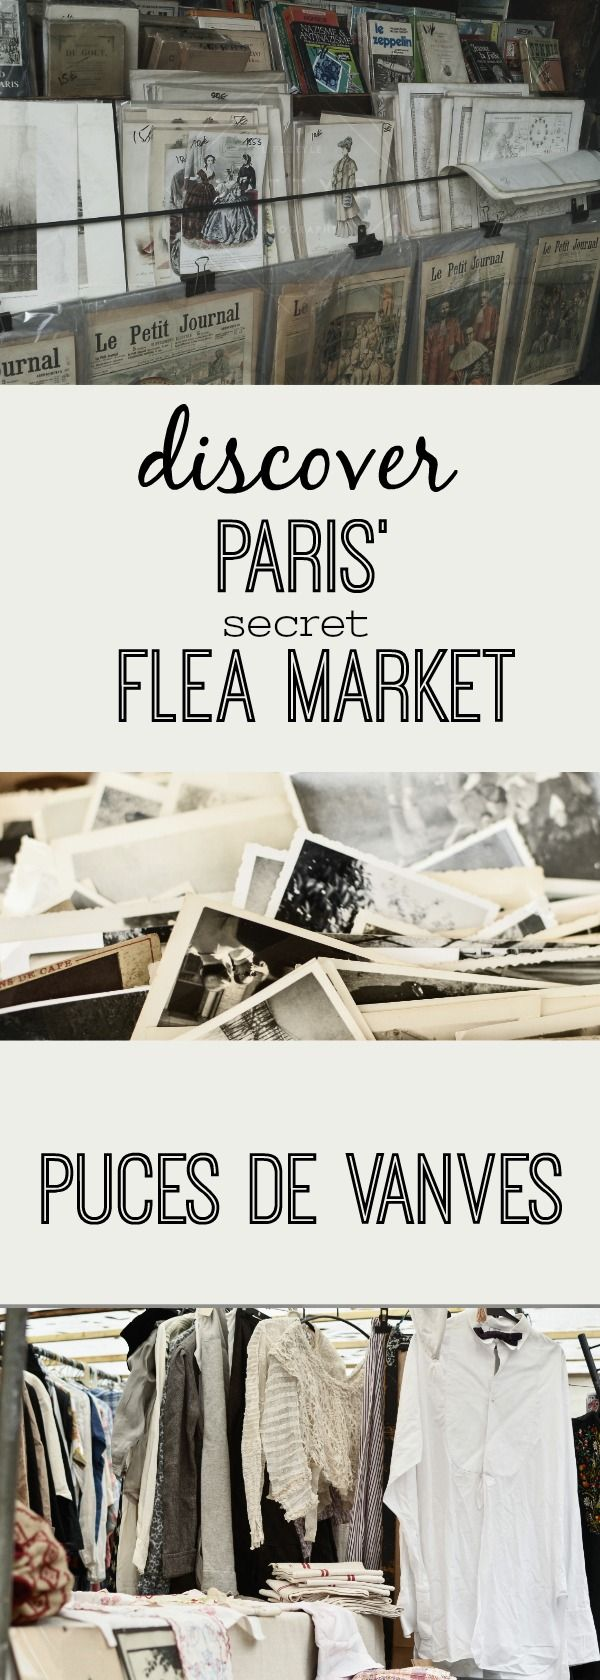 "Visit Paris' Flea Market at Porte de Vanves - the Puces de Vanves is a hidden gem and quite unknown compared to the world famous Puces de St.Ouen in Pari's north. Discover an off beat activity when you're in Paris - explore the south of Paris, including the 15th and 14th arrondissement - a non touristic residential area, that shows you a laid back and authentic side of Paris - a good activity if you are traveling to Paris and wondering ""what to do in Paris"""